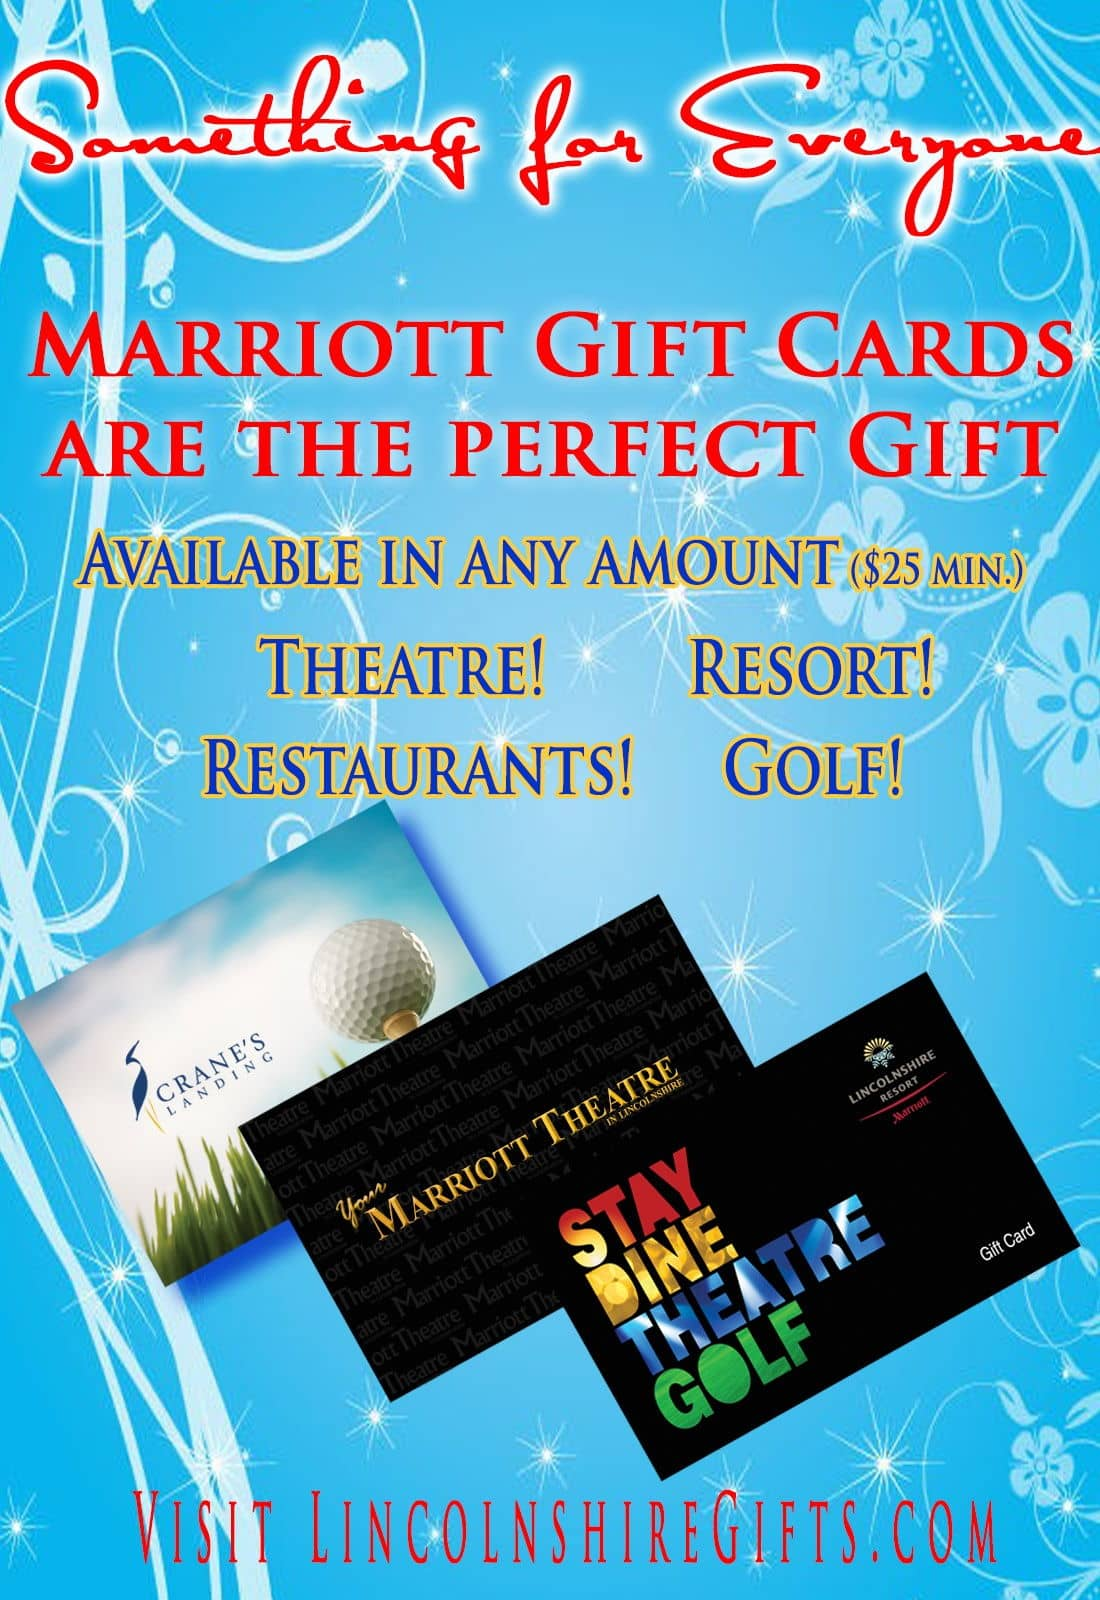 Marriott gift cards are the perfect gift